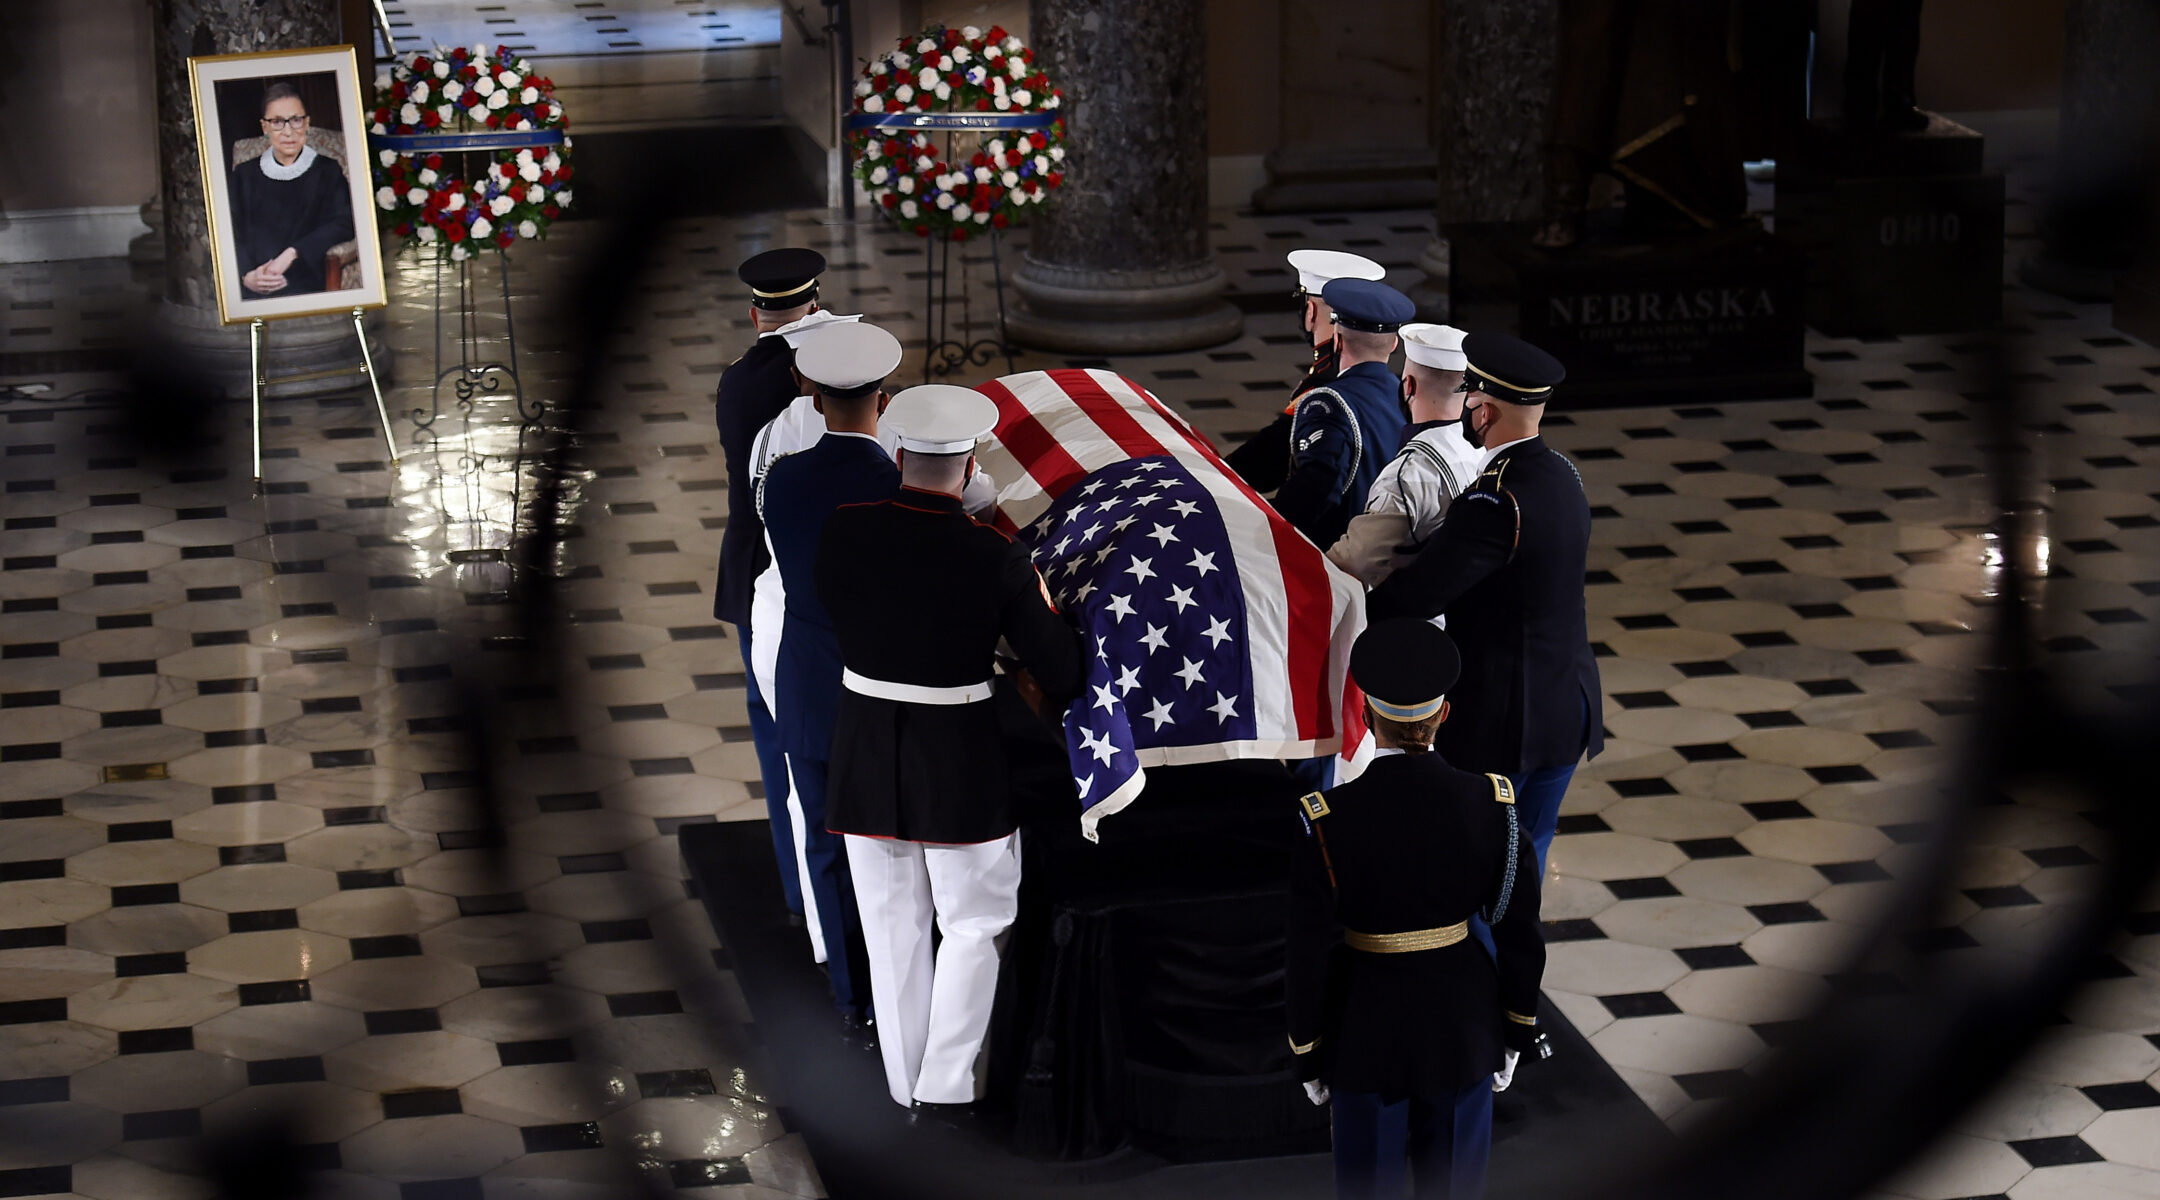 eight men in military uniform carry a casket draped in an American flag